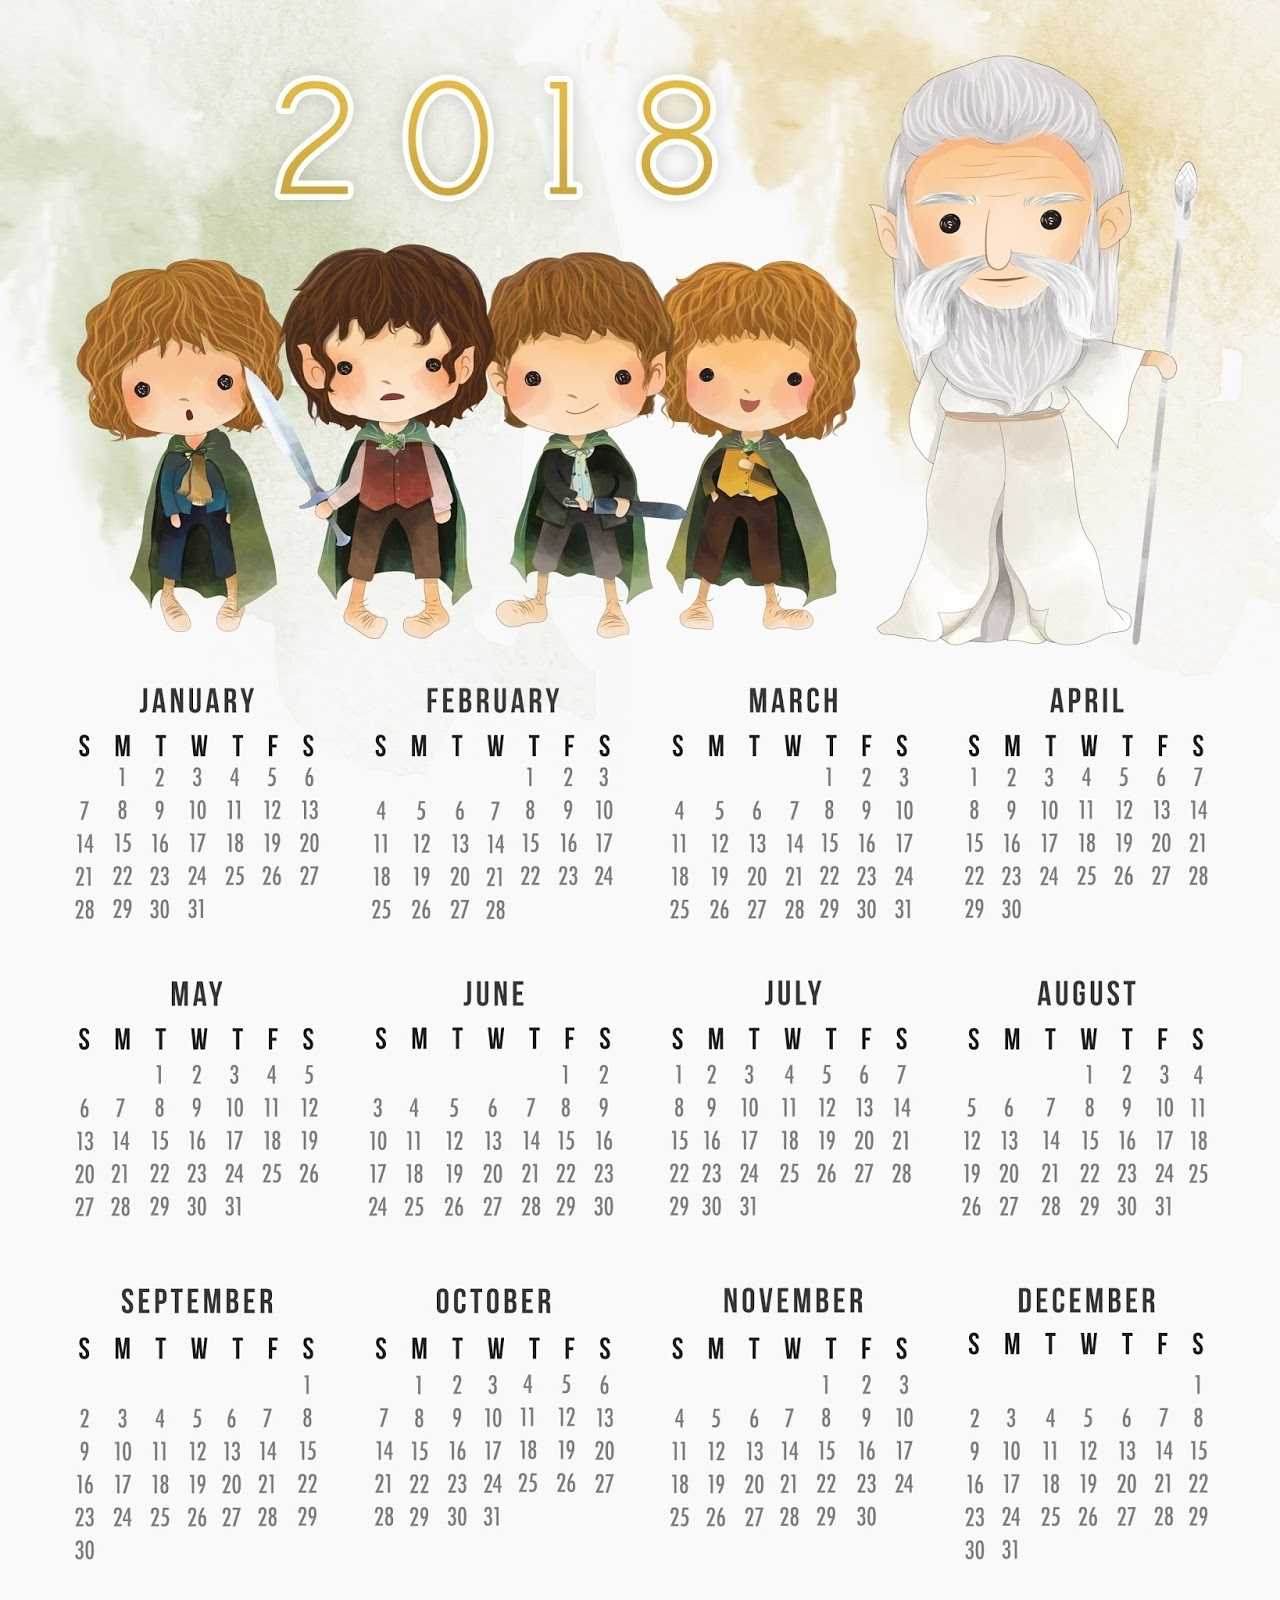 Free Printable 2018 The Lord Of The Rings Calendar. - Oh My Fiesta with regard to Free Printable Adult Superhero Calendars